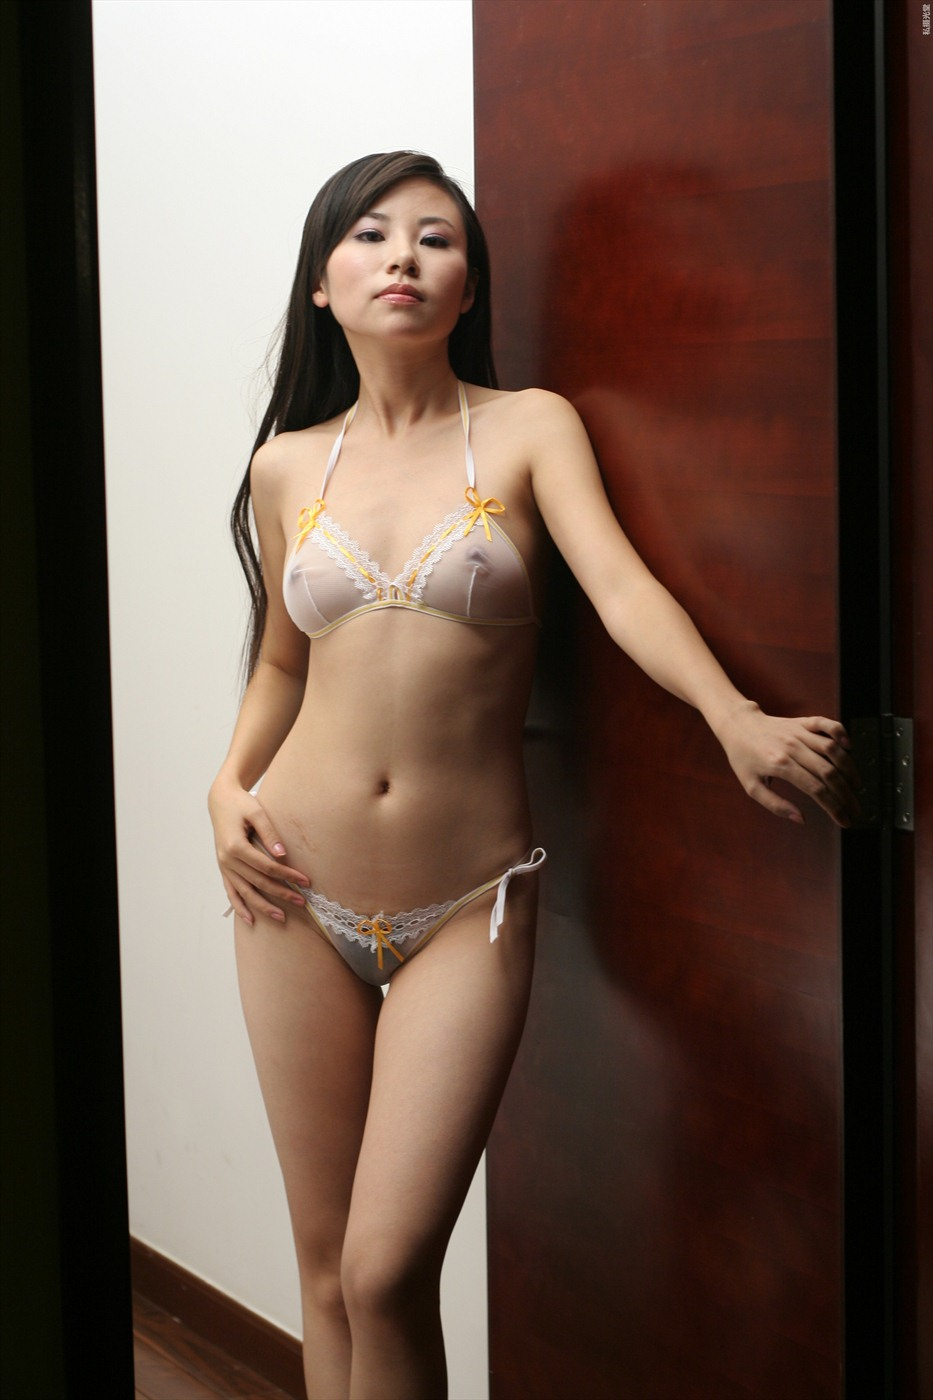 Img Jpg Asian China Nude Model Jingyu Want To Enjoy Some